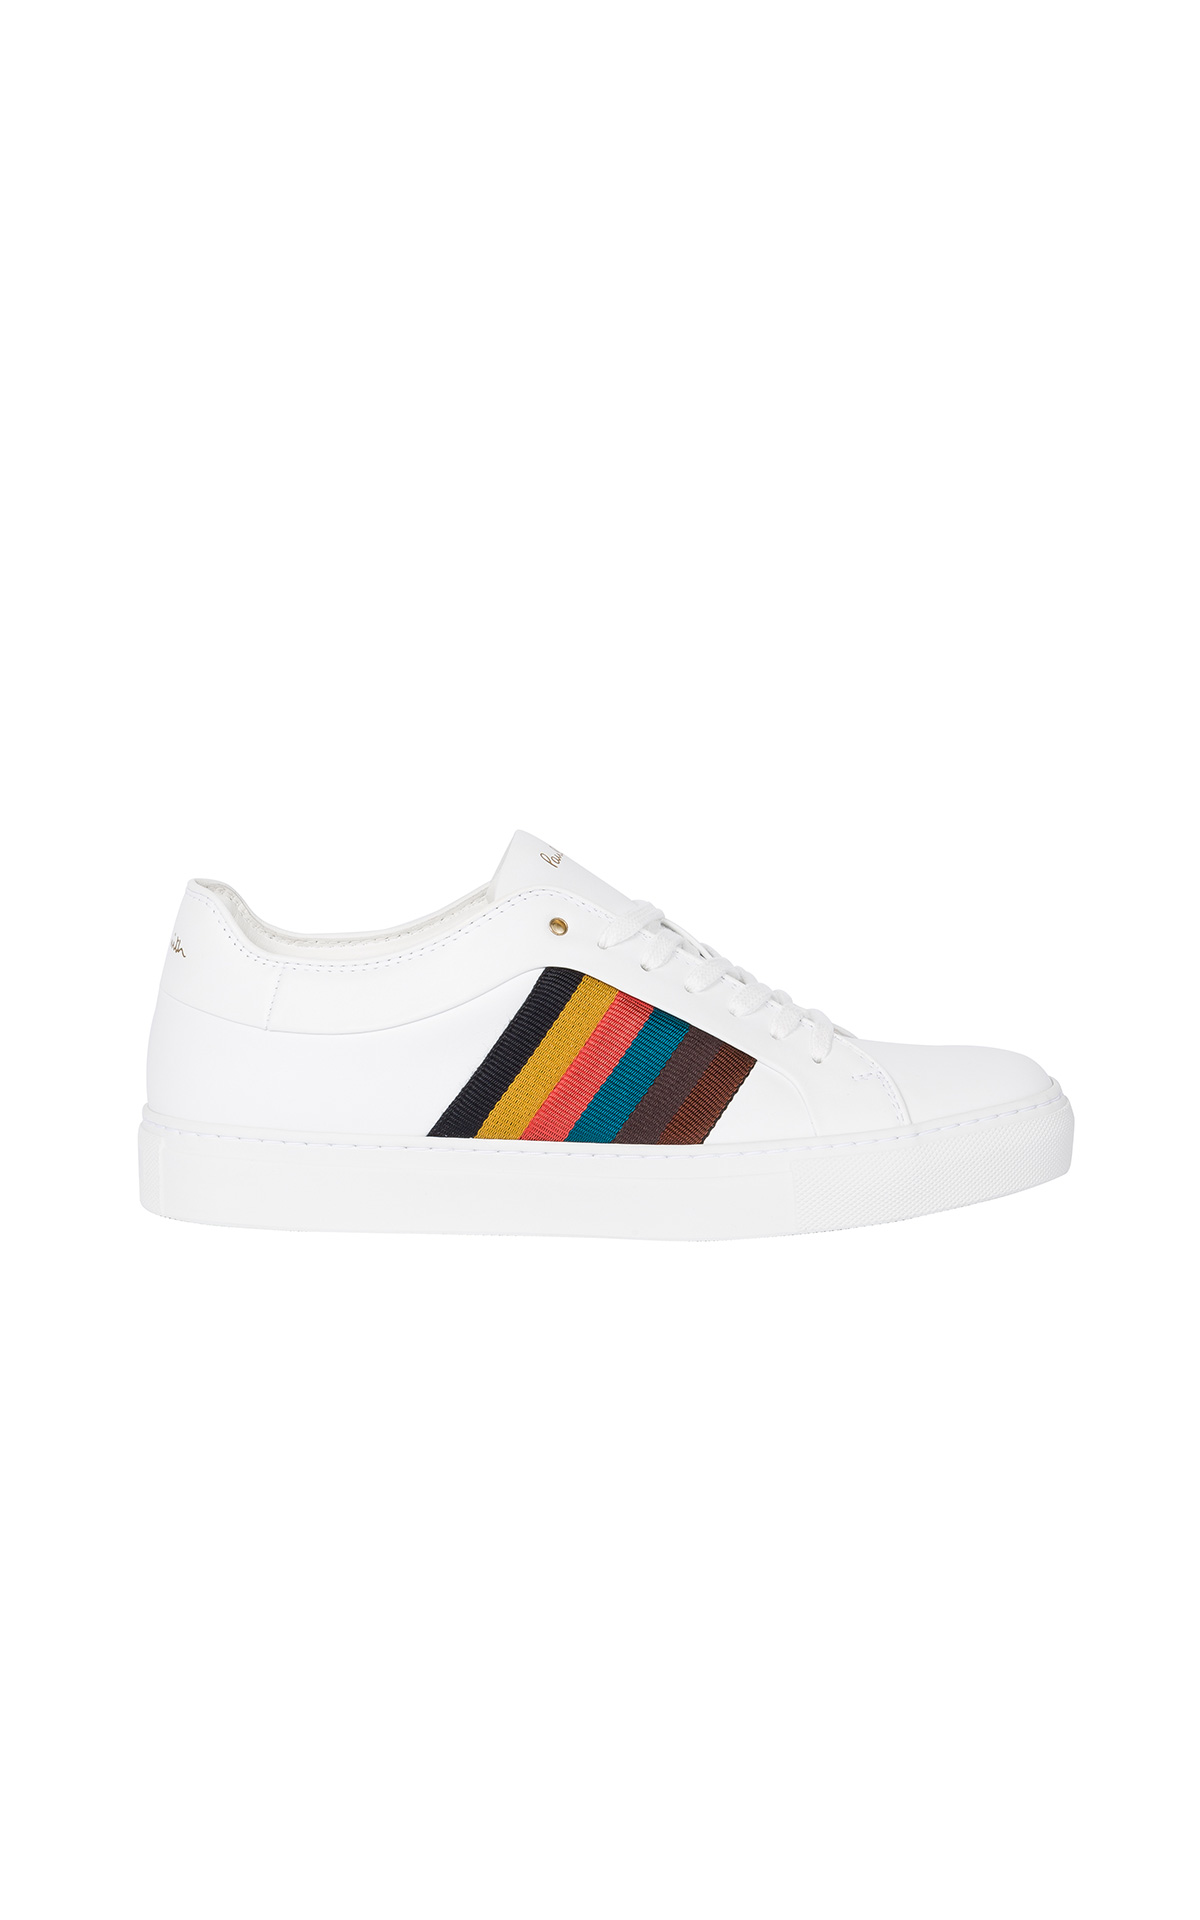 La Vallée Village Paul Smith Ivo sneakers